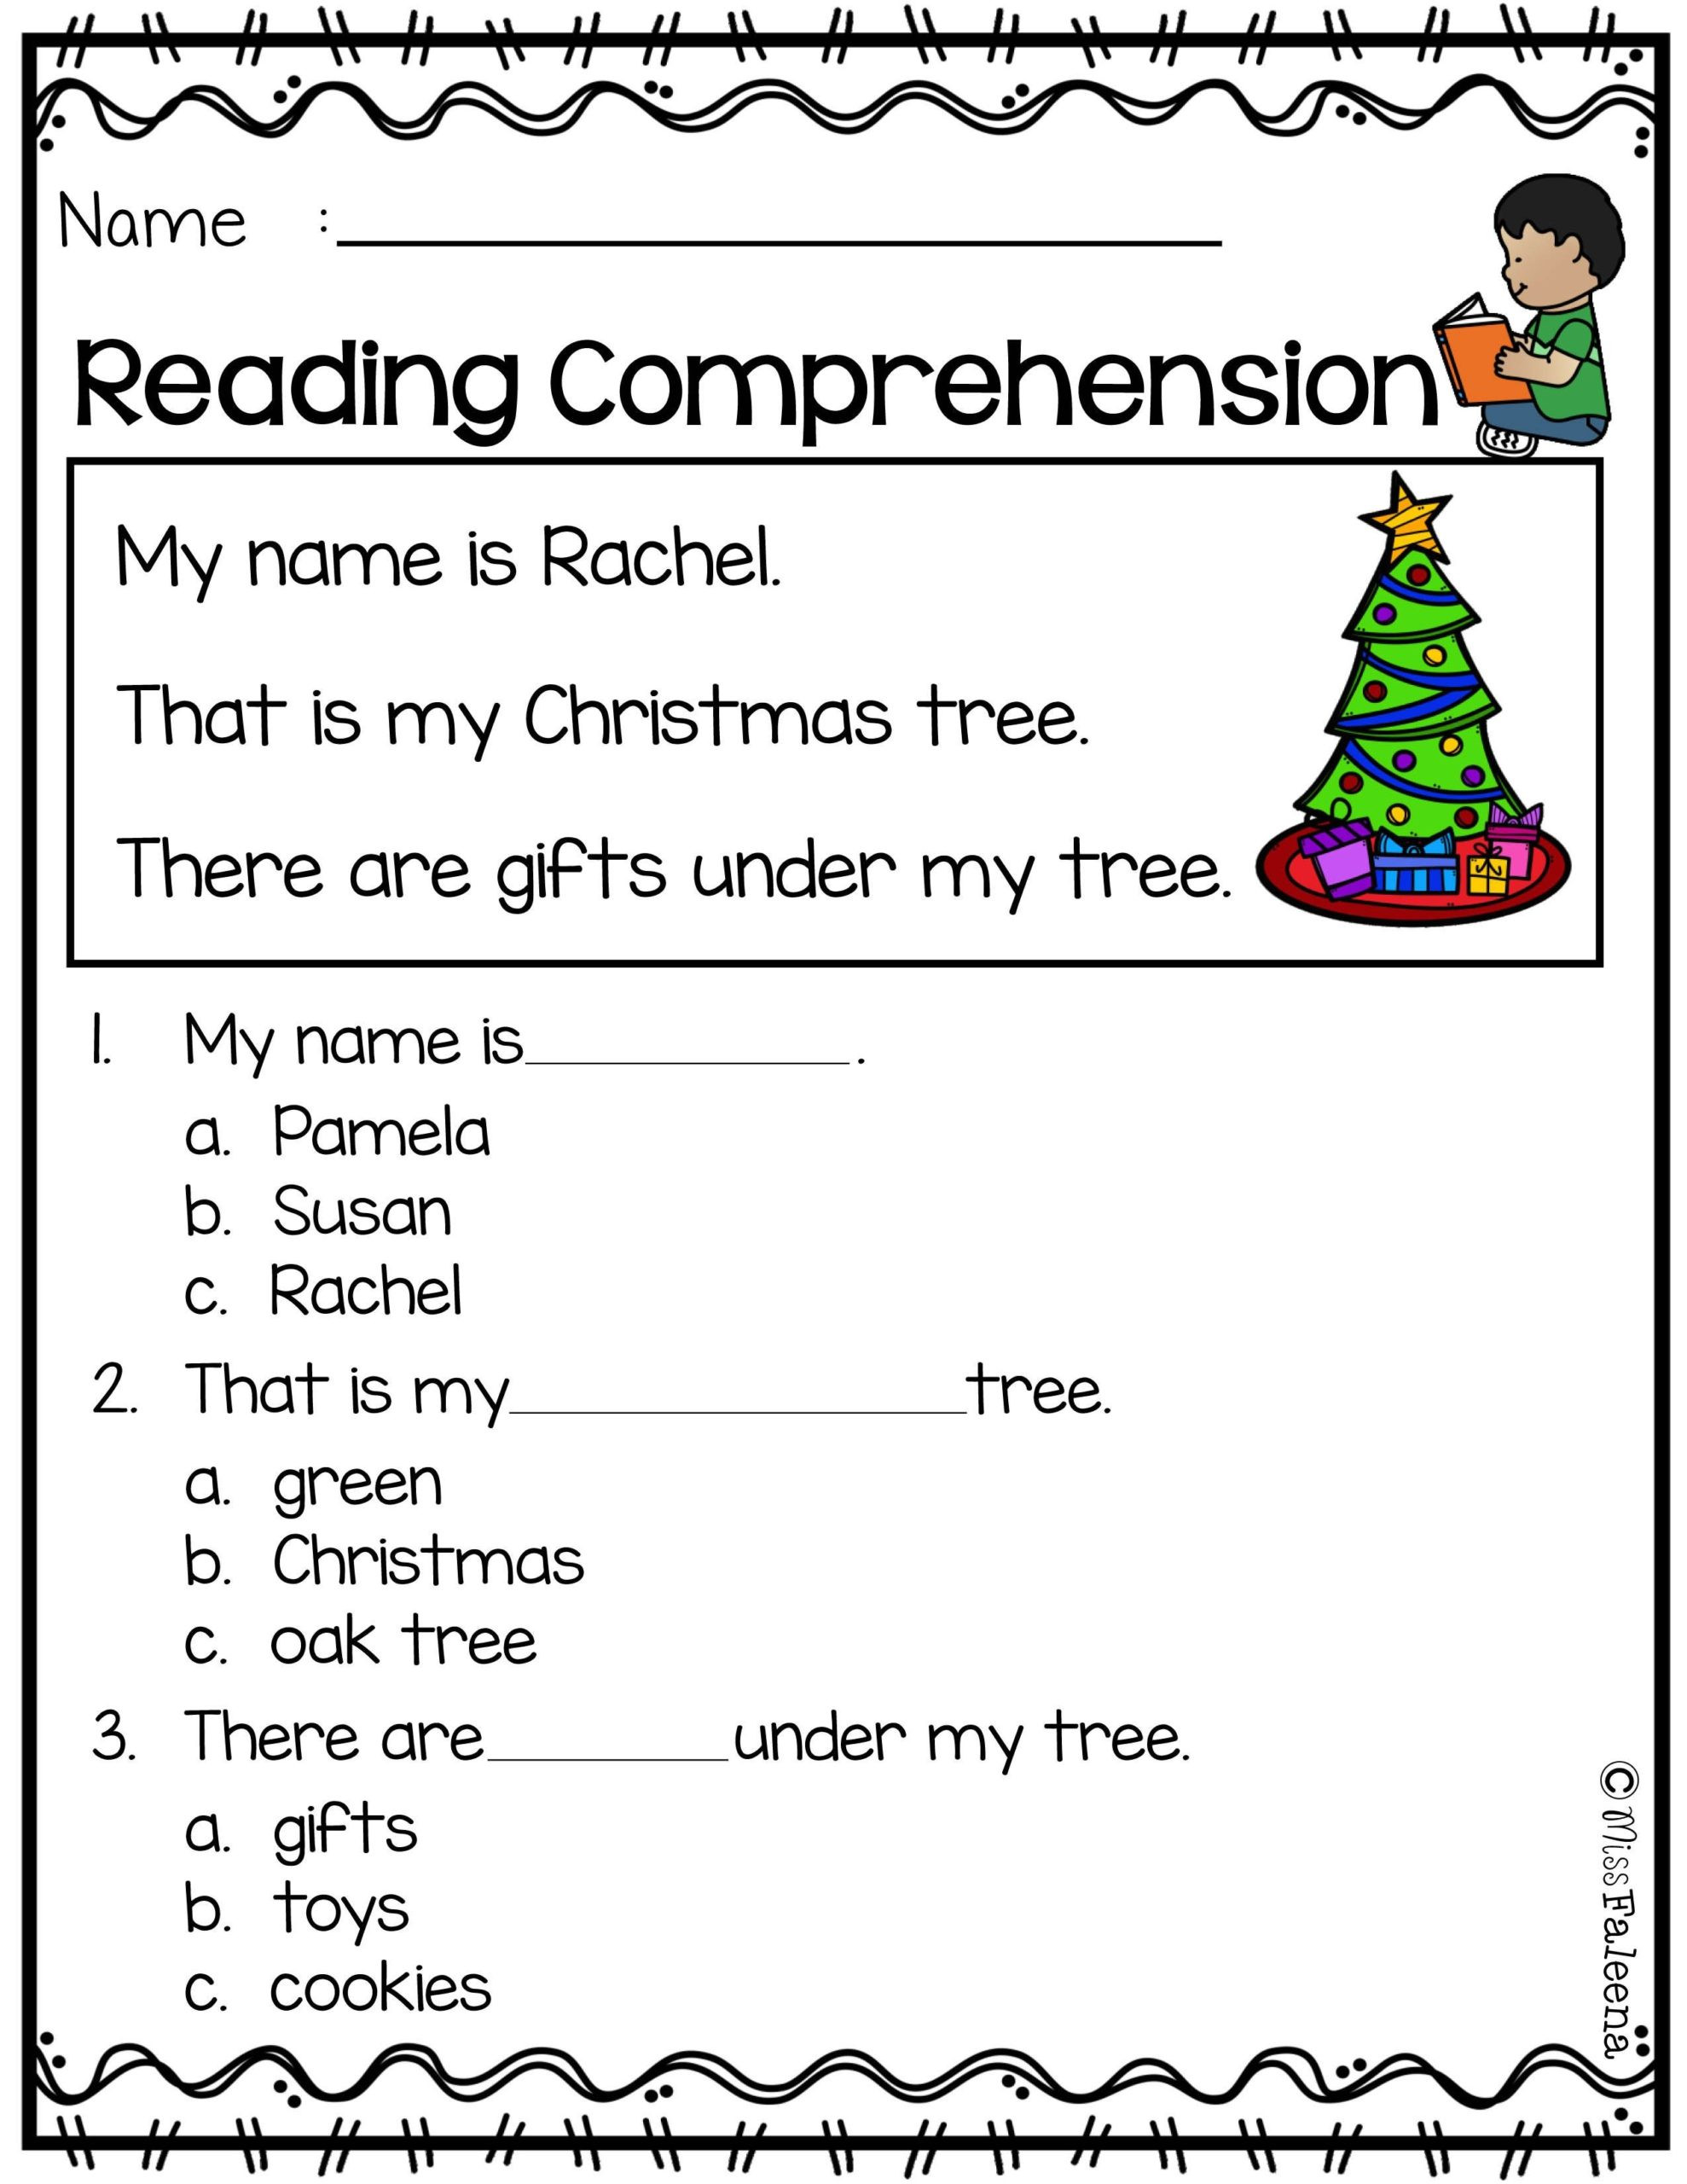 Christmas Reading Comprehension Worksheets Math Worksheet Third Grade Readingsion Worksheets 3rd